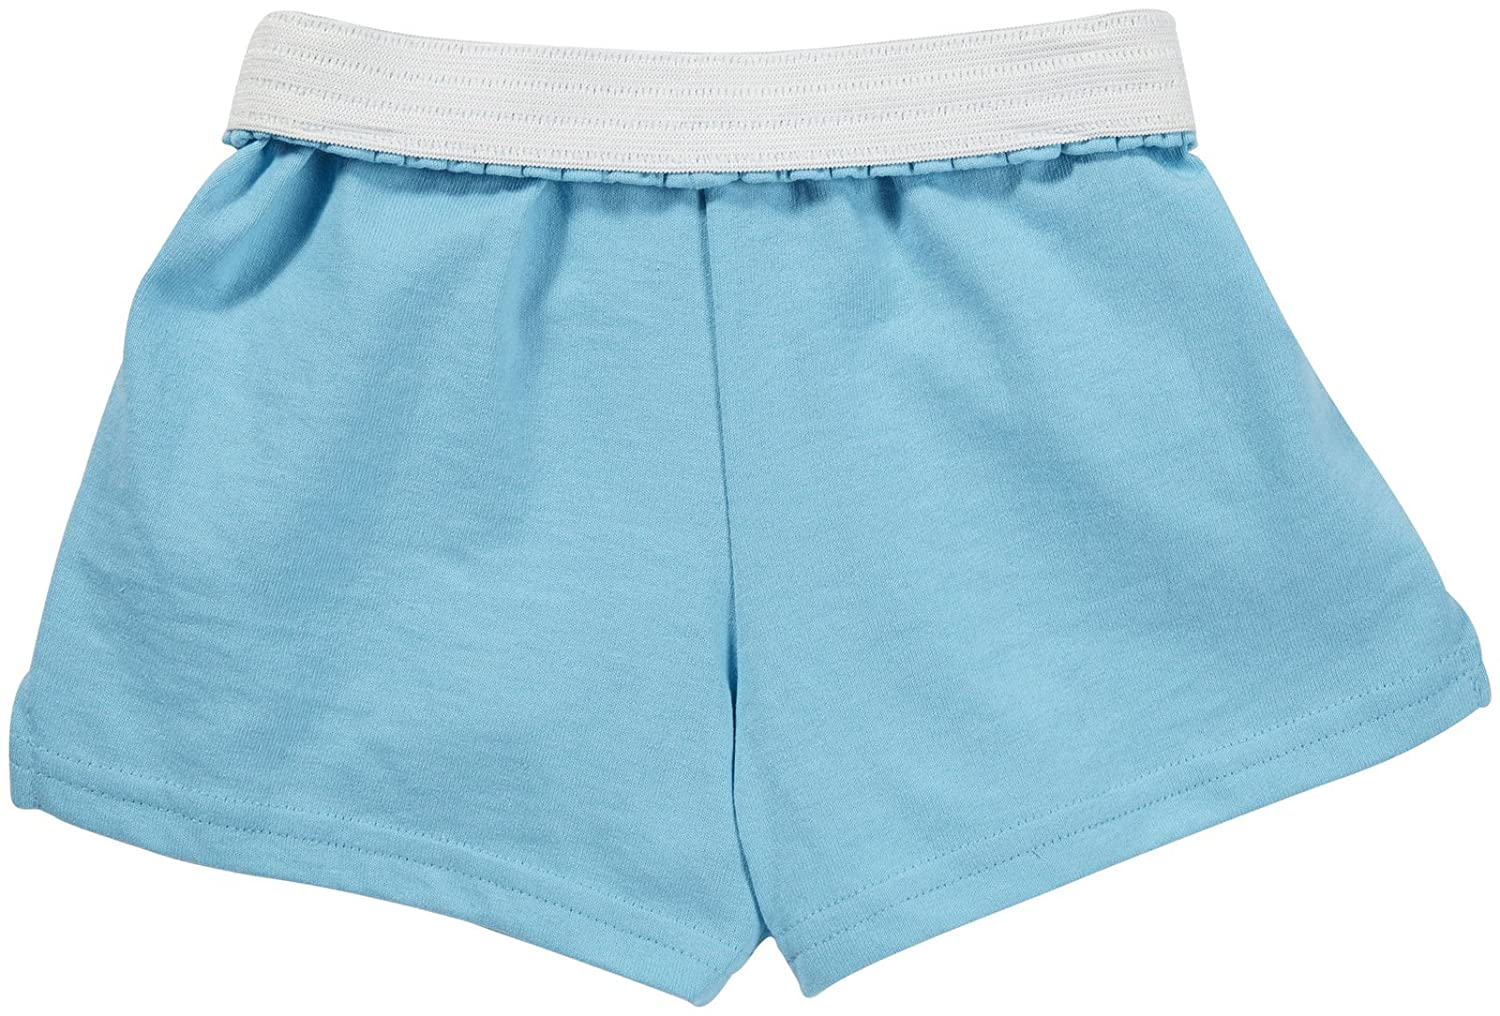 Soffe The Authentic Soffe Short